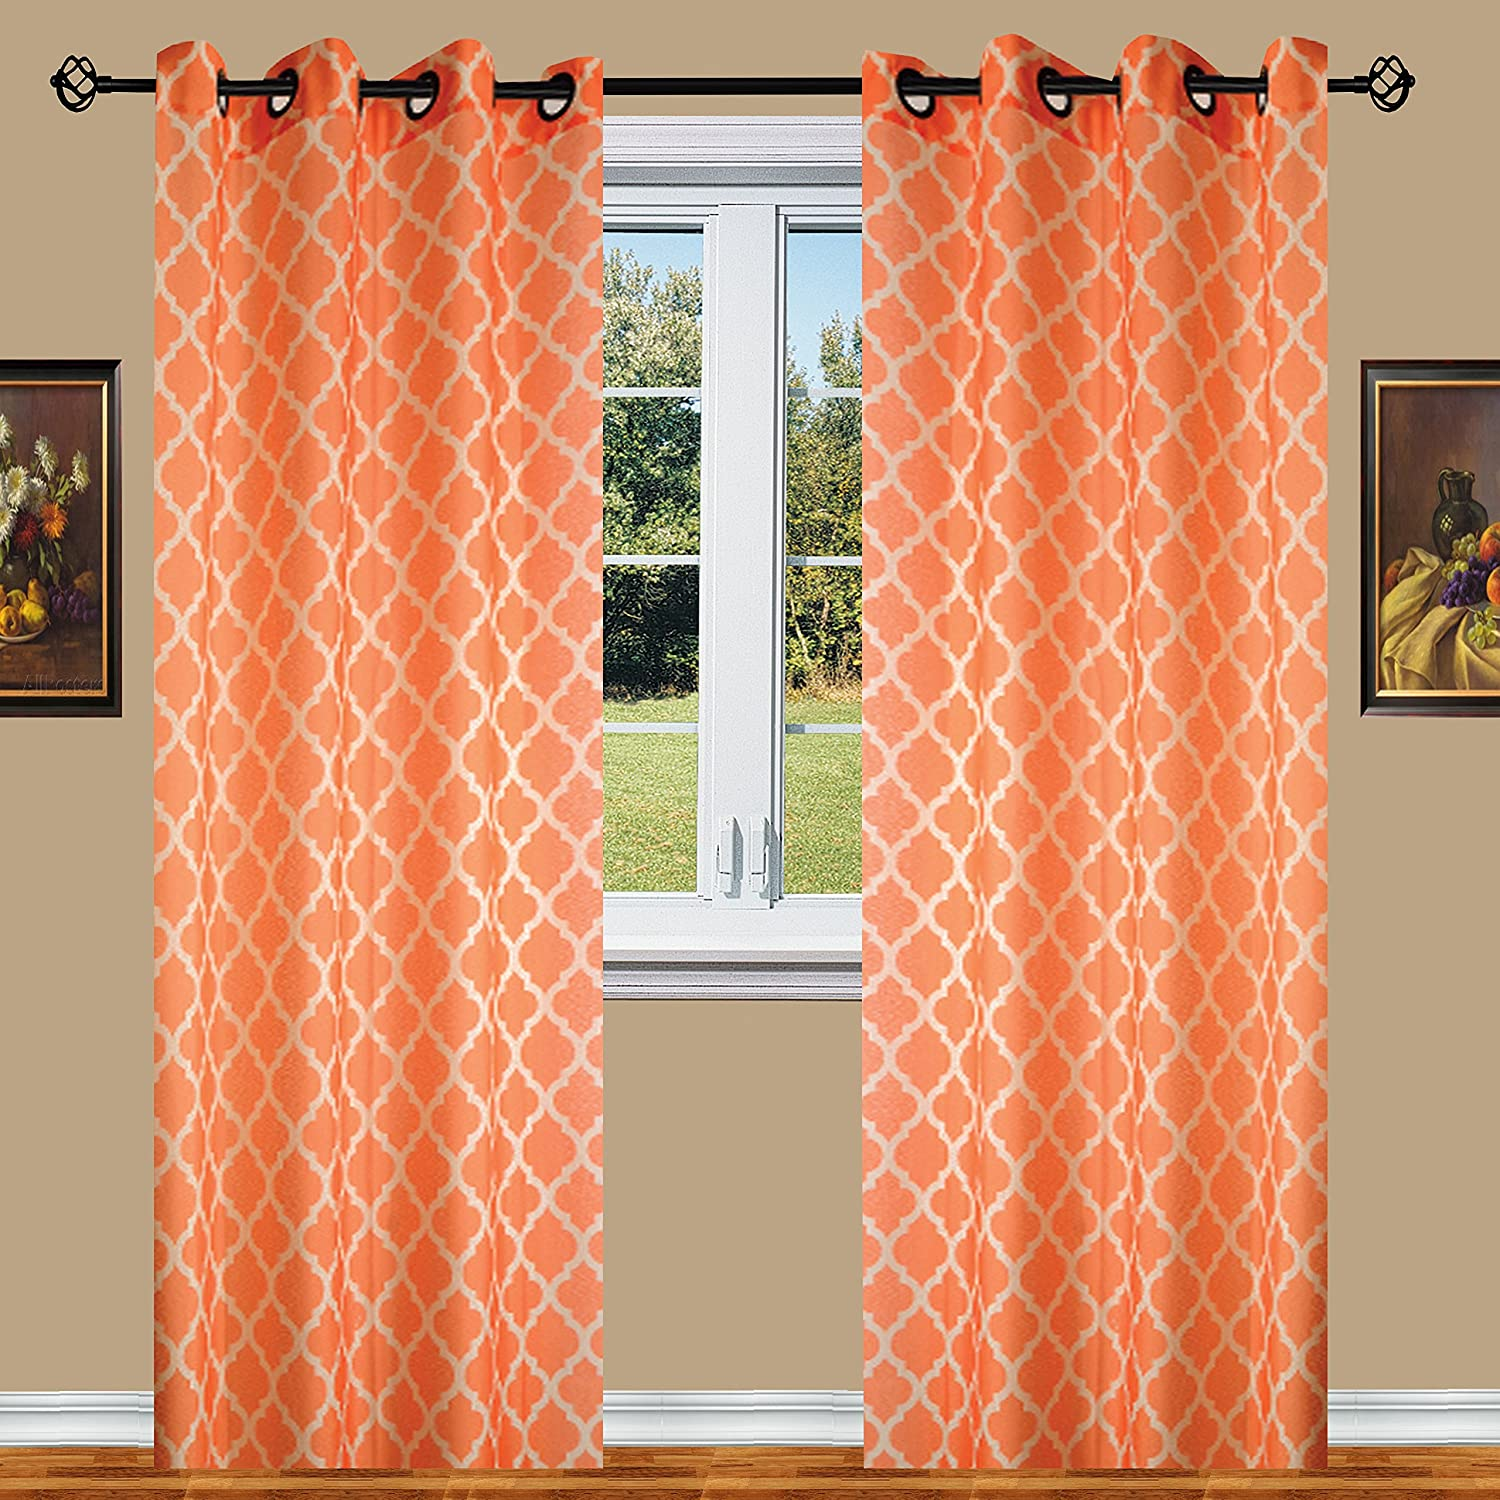 Orange Elegant Comfort Luxury Sheer Look Printed Grommet Window Curtain Panel Set